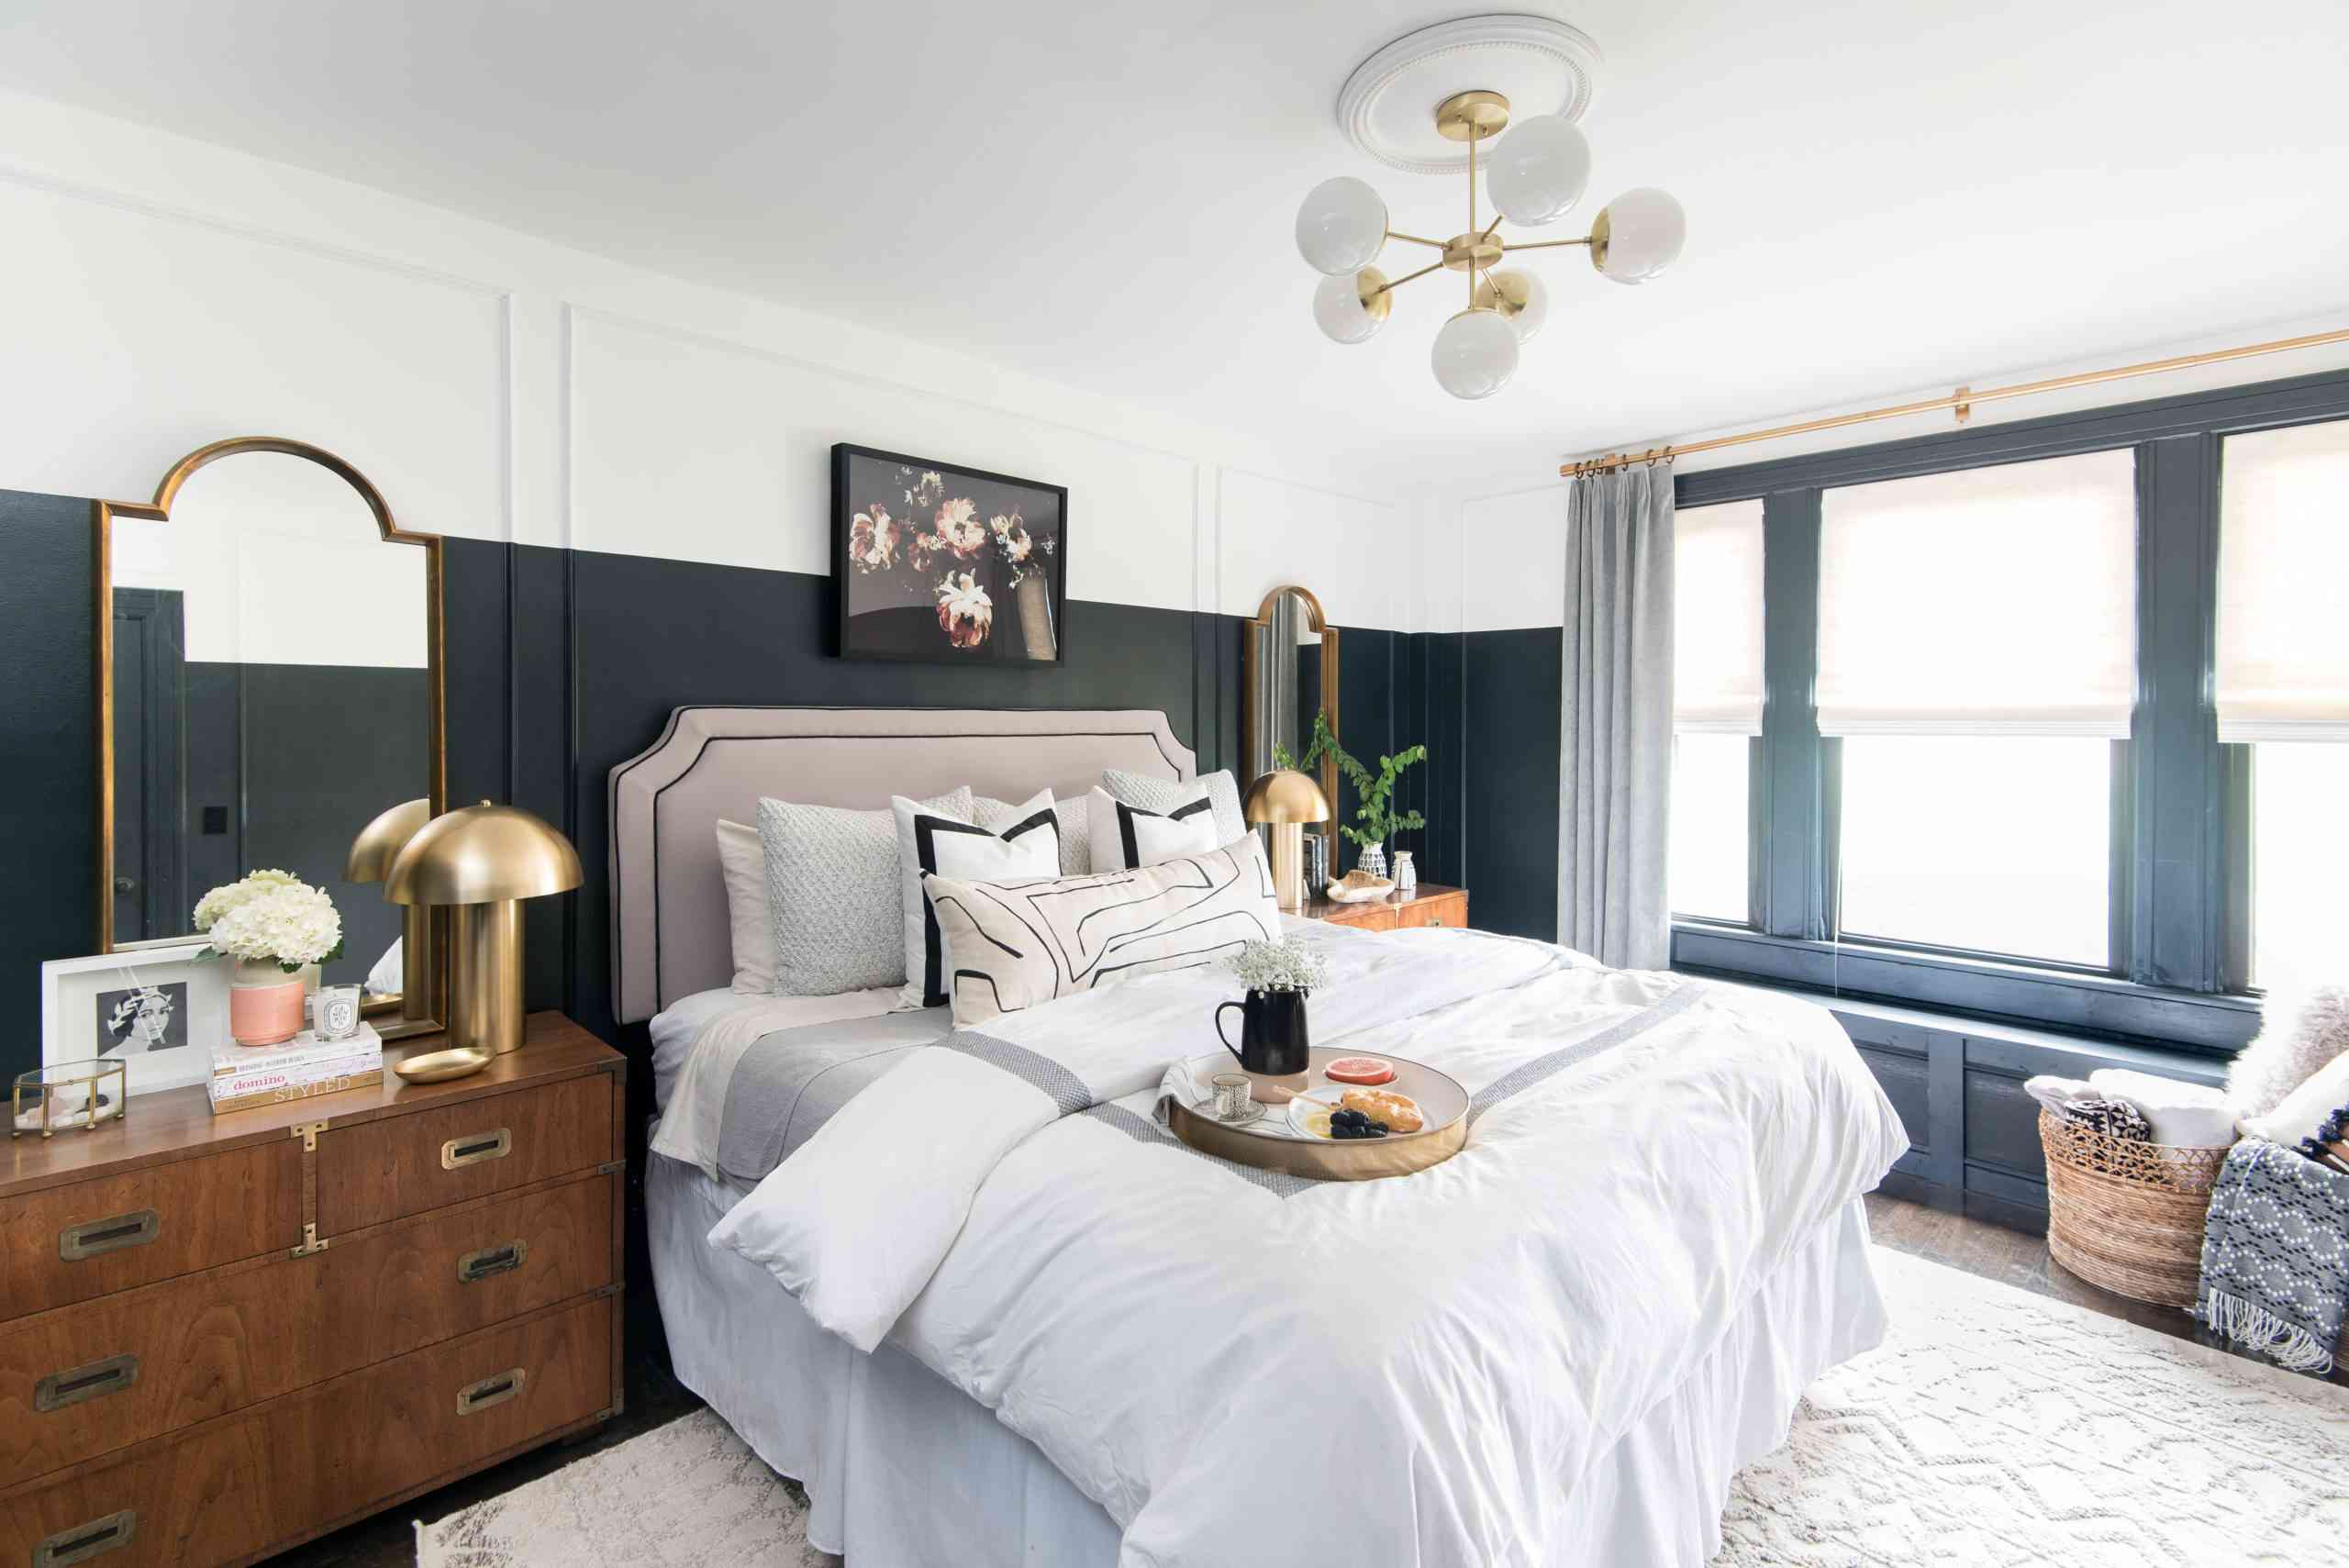 Ornate bedroom with large gold mirror and mushroom lamp.